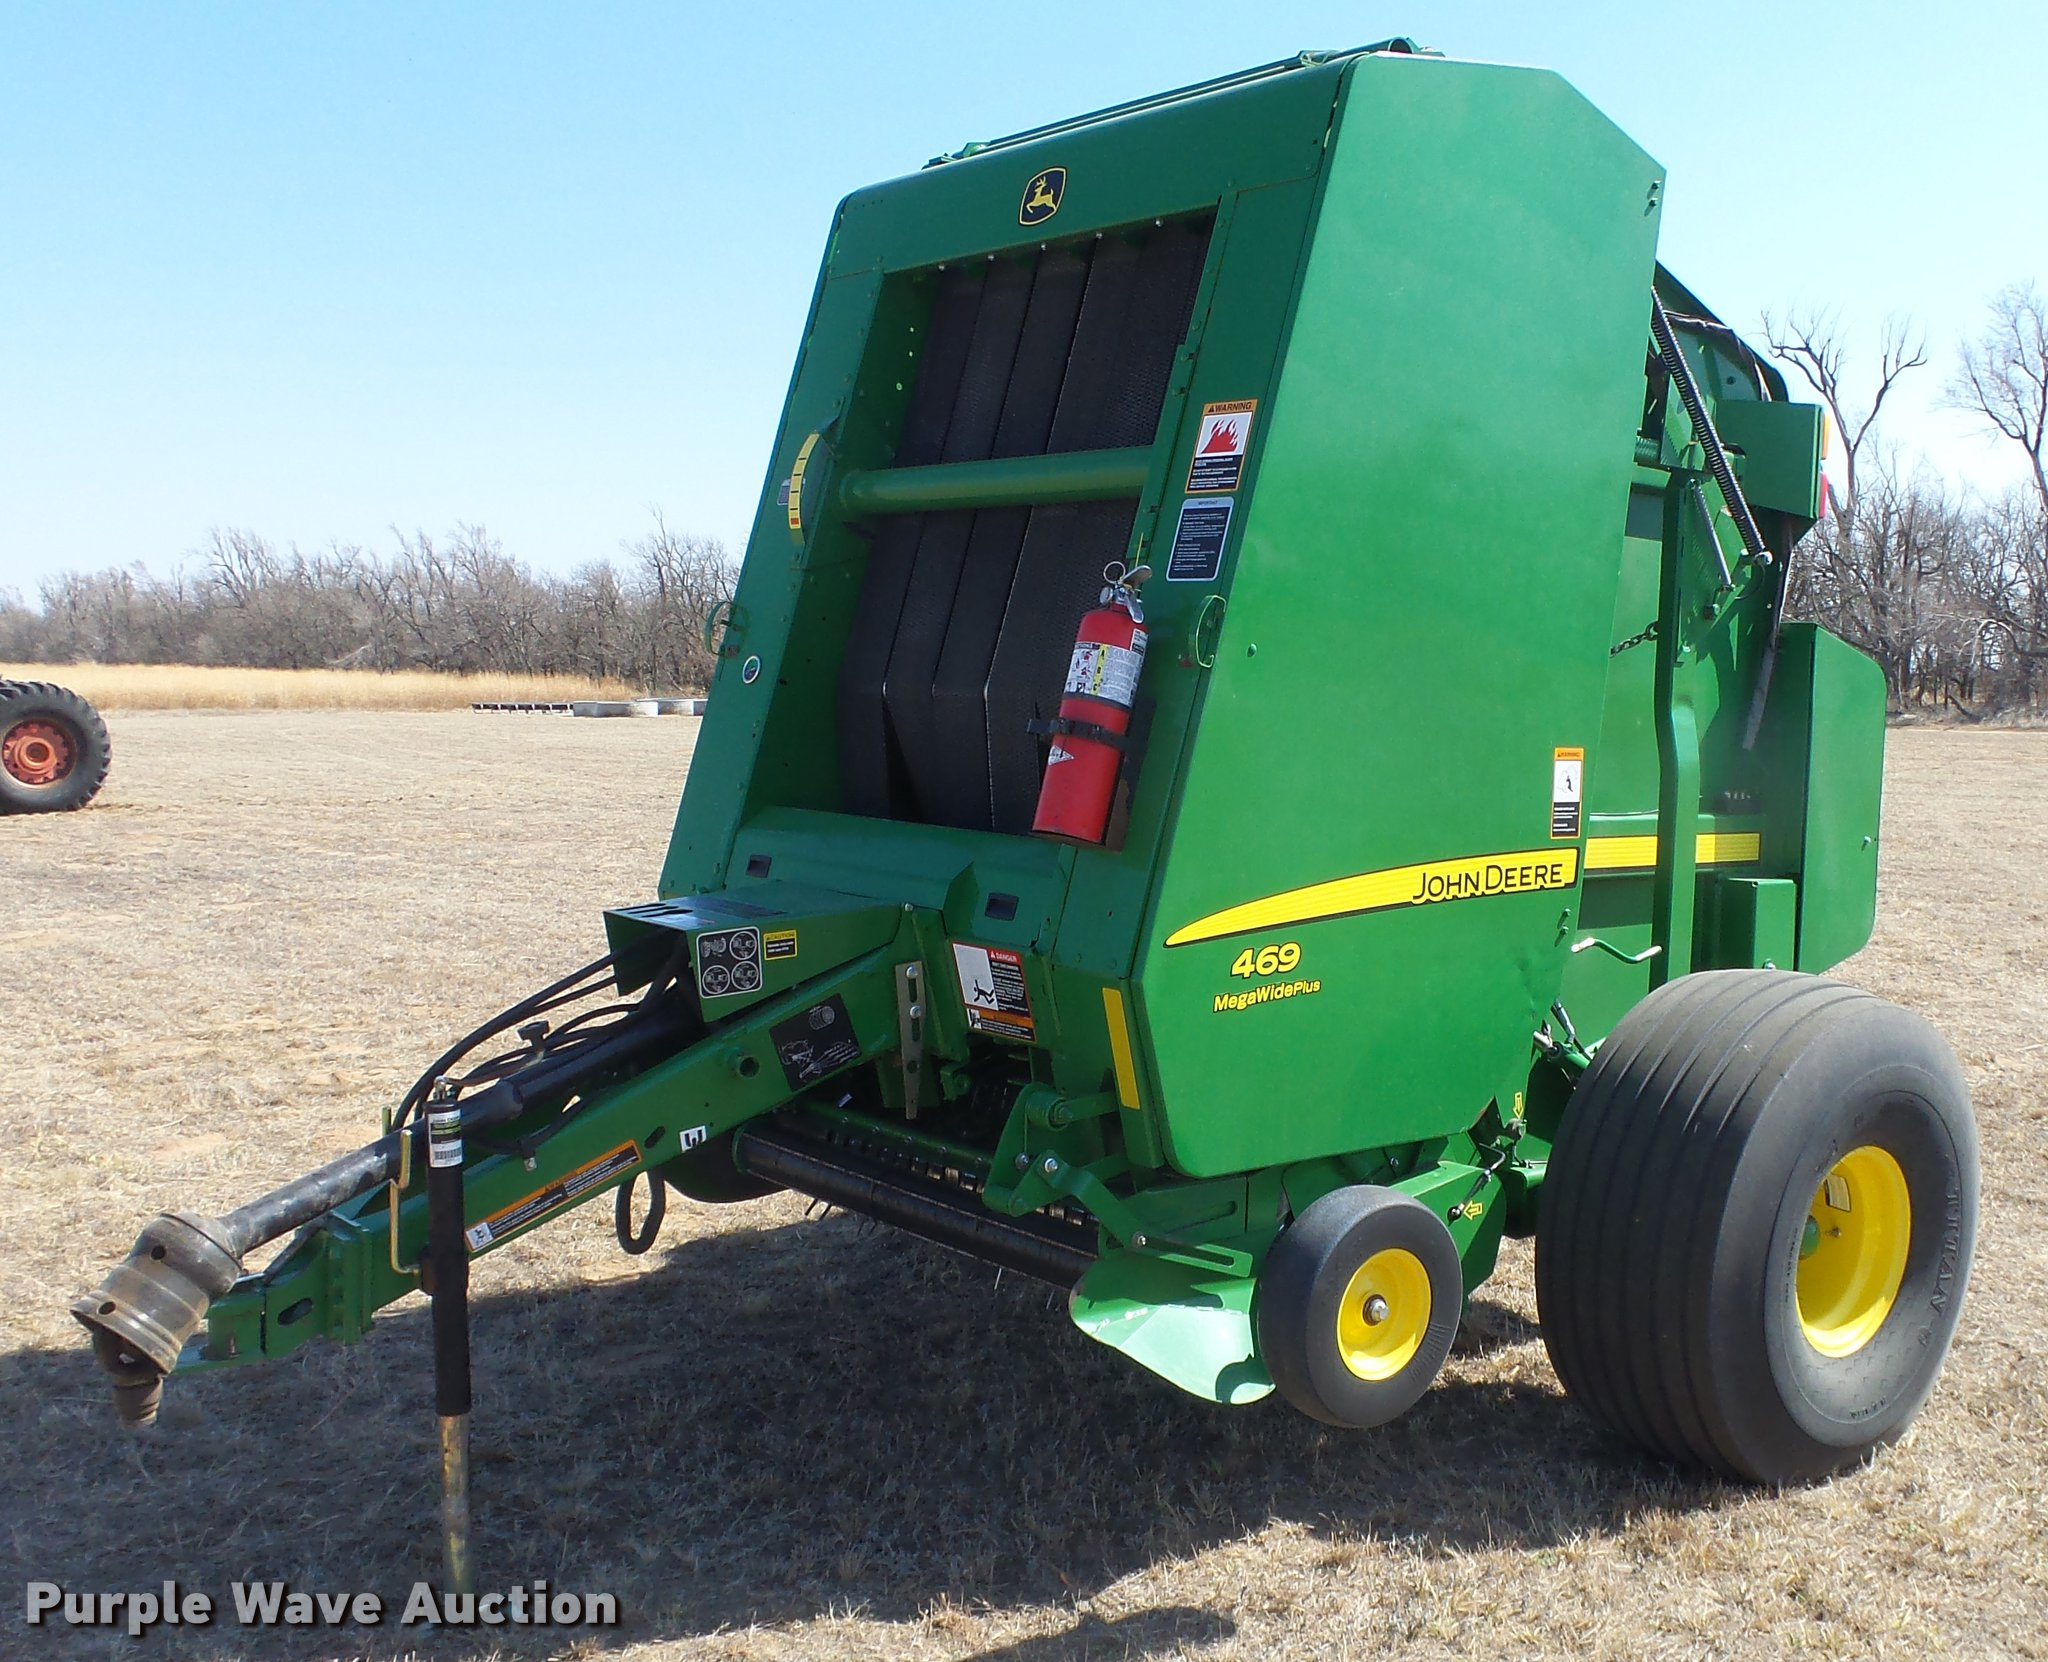 2014 John Deere 469 round baler | Item DC0712 | SOLD! April